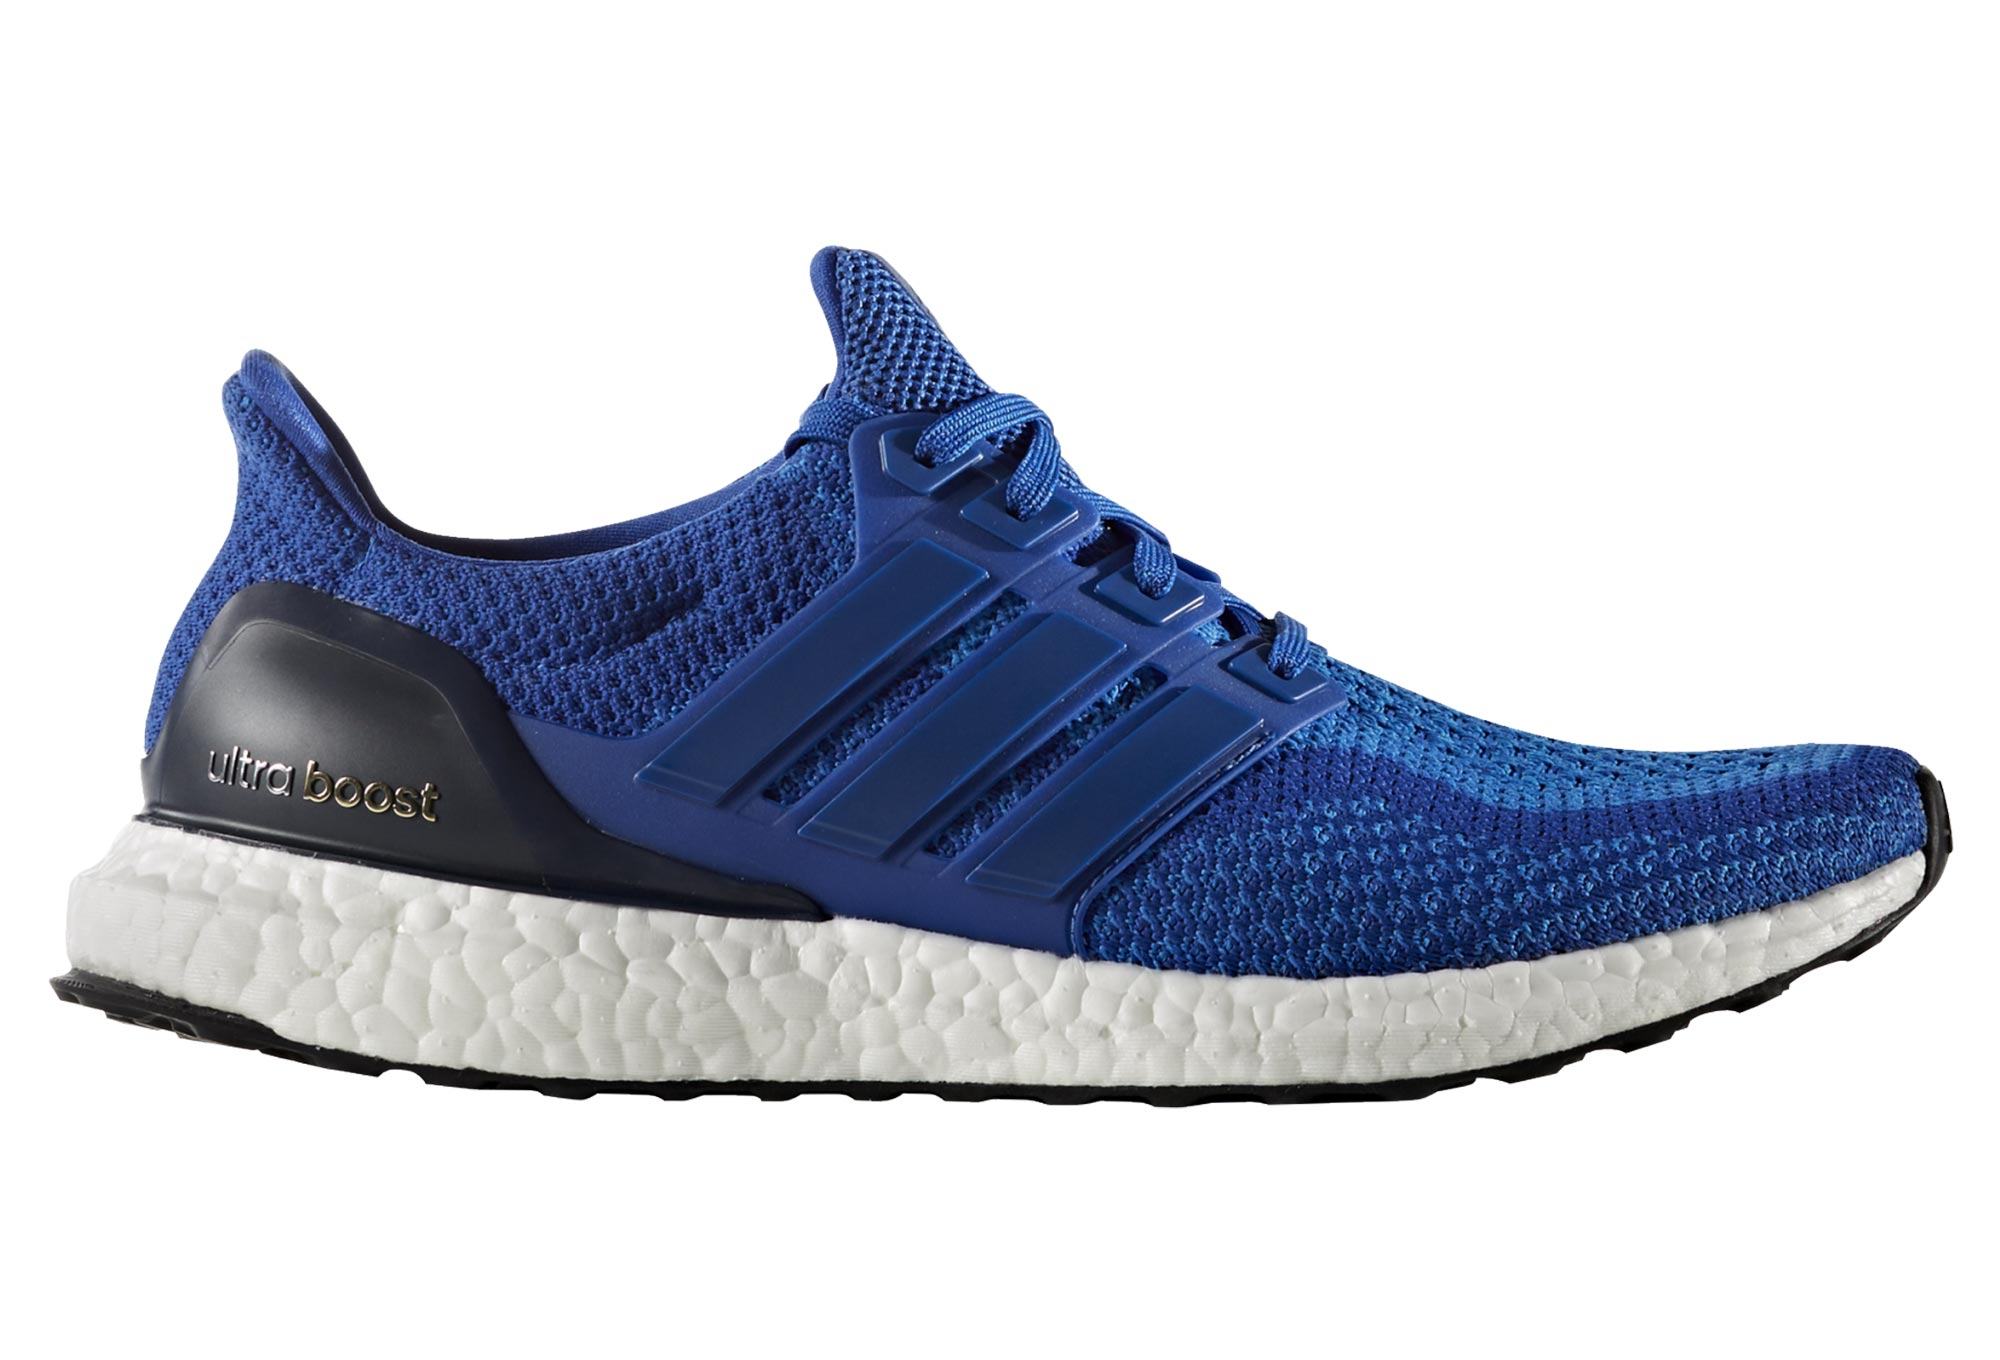 laufschuhe adidas ultra boost blau. Black Bedroom Furniture Sets. Home Design Ideas